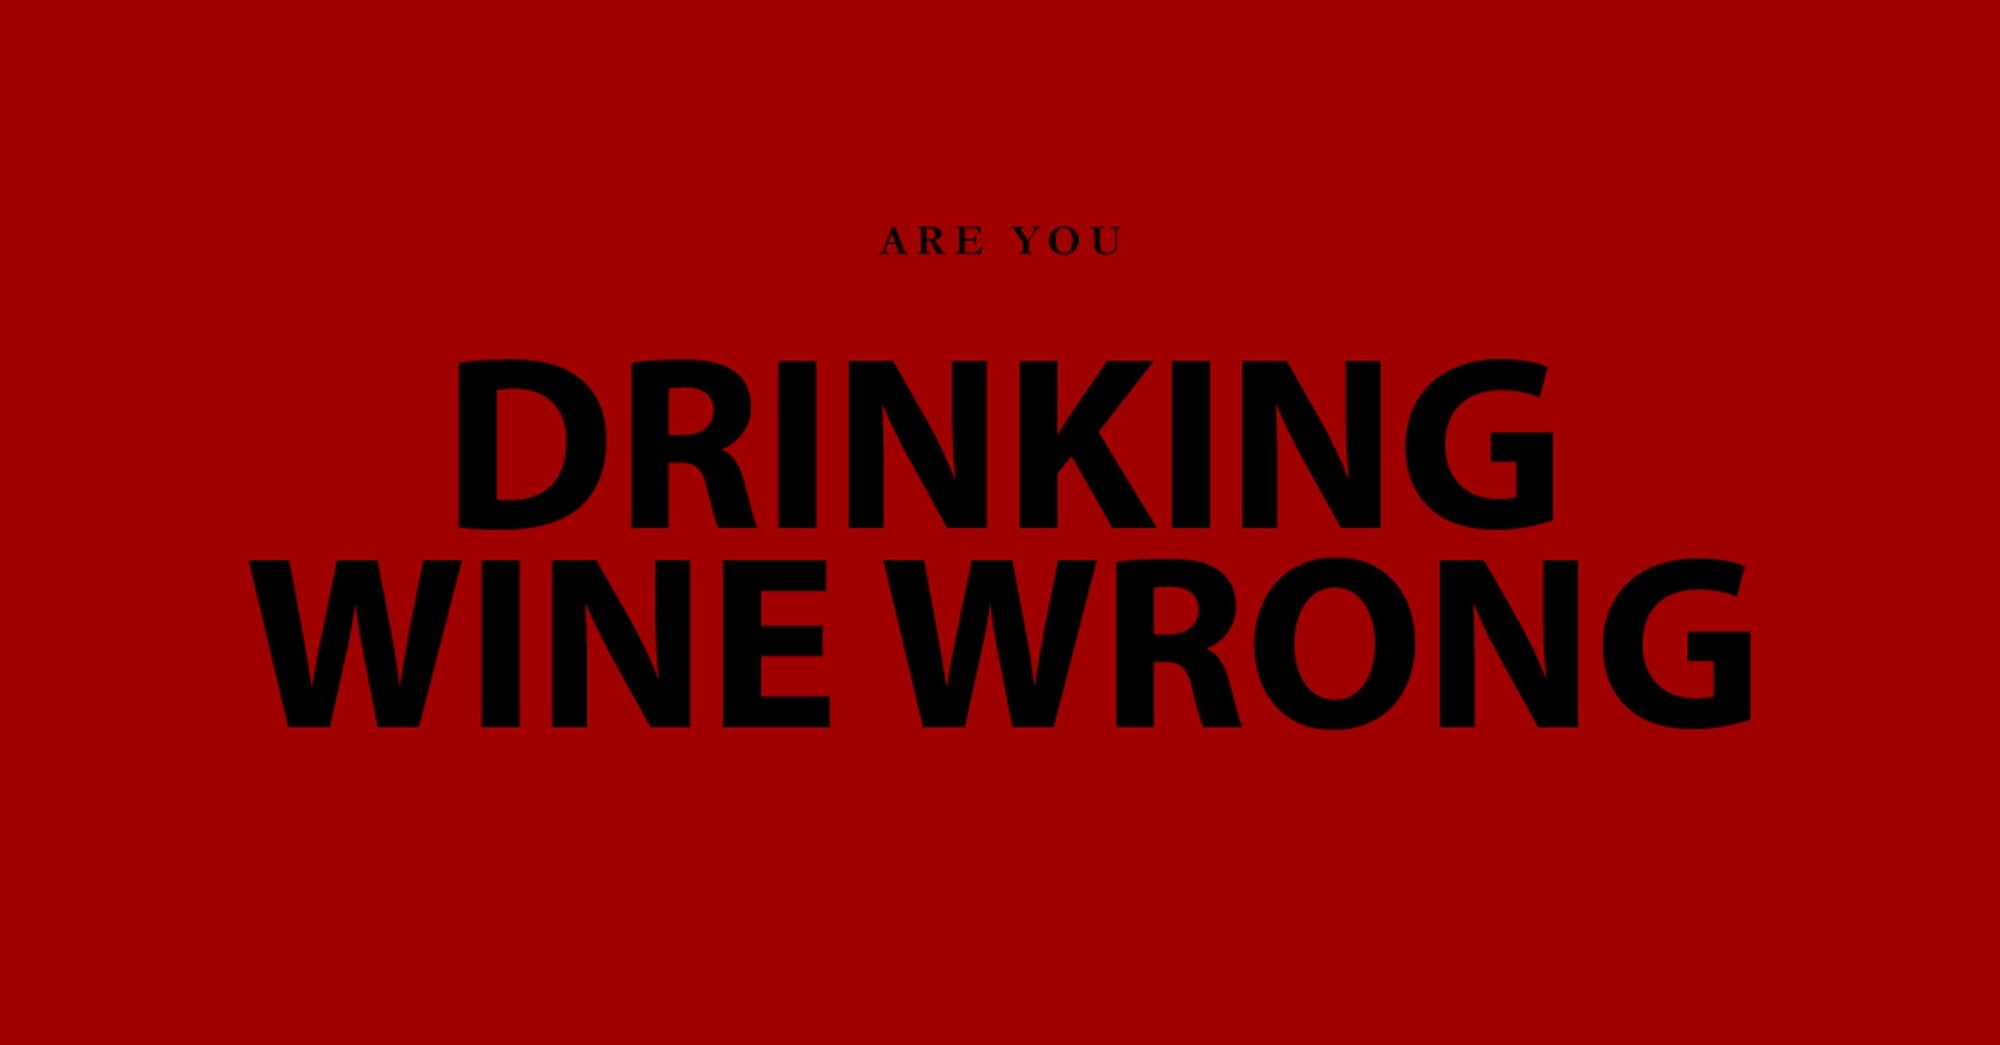 Are you drinking wine wrong?